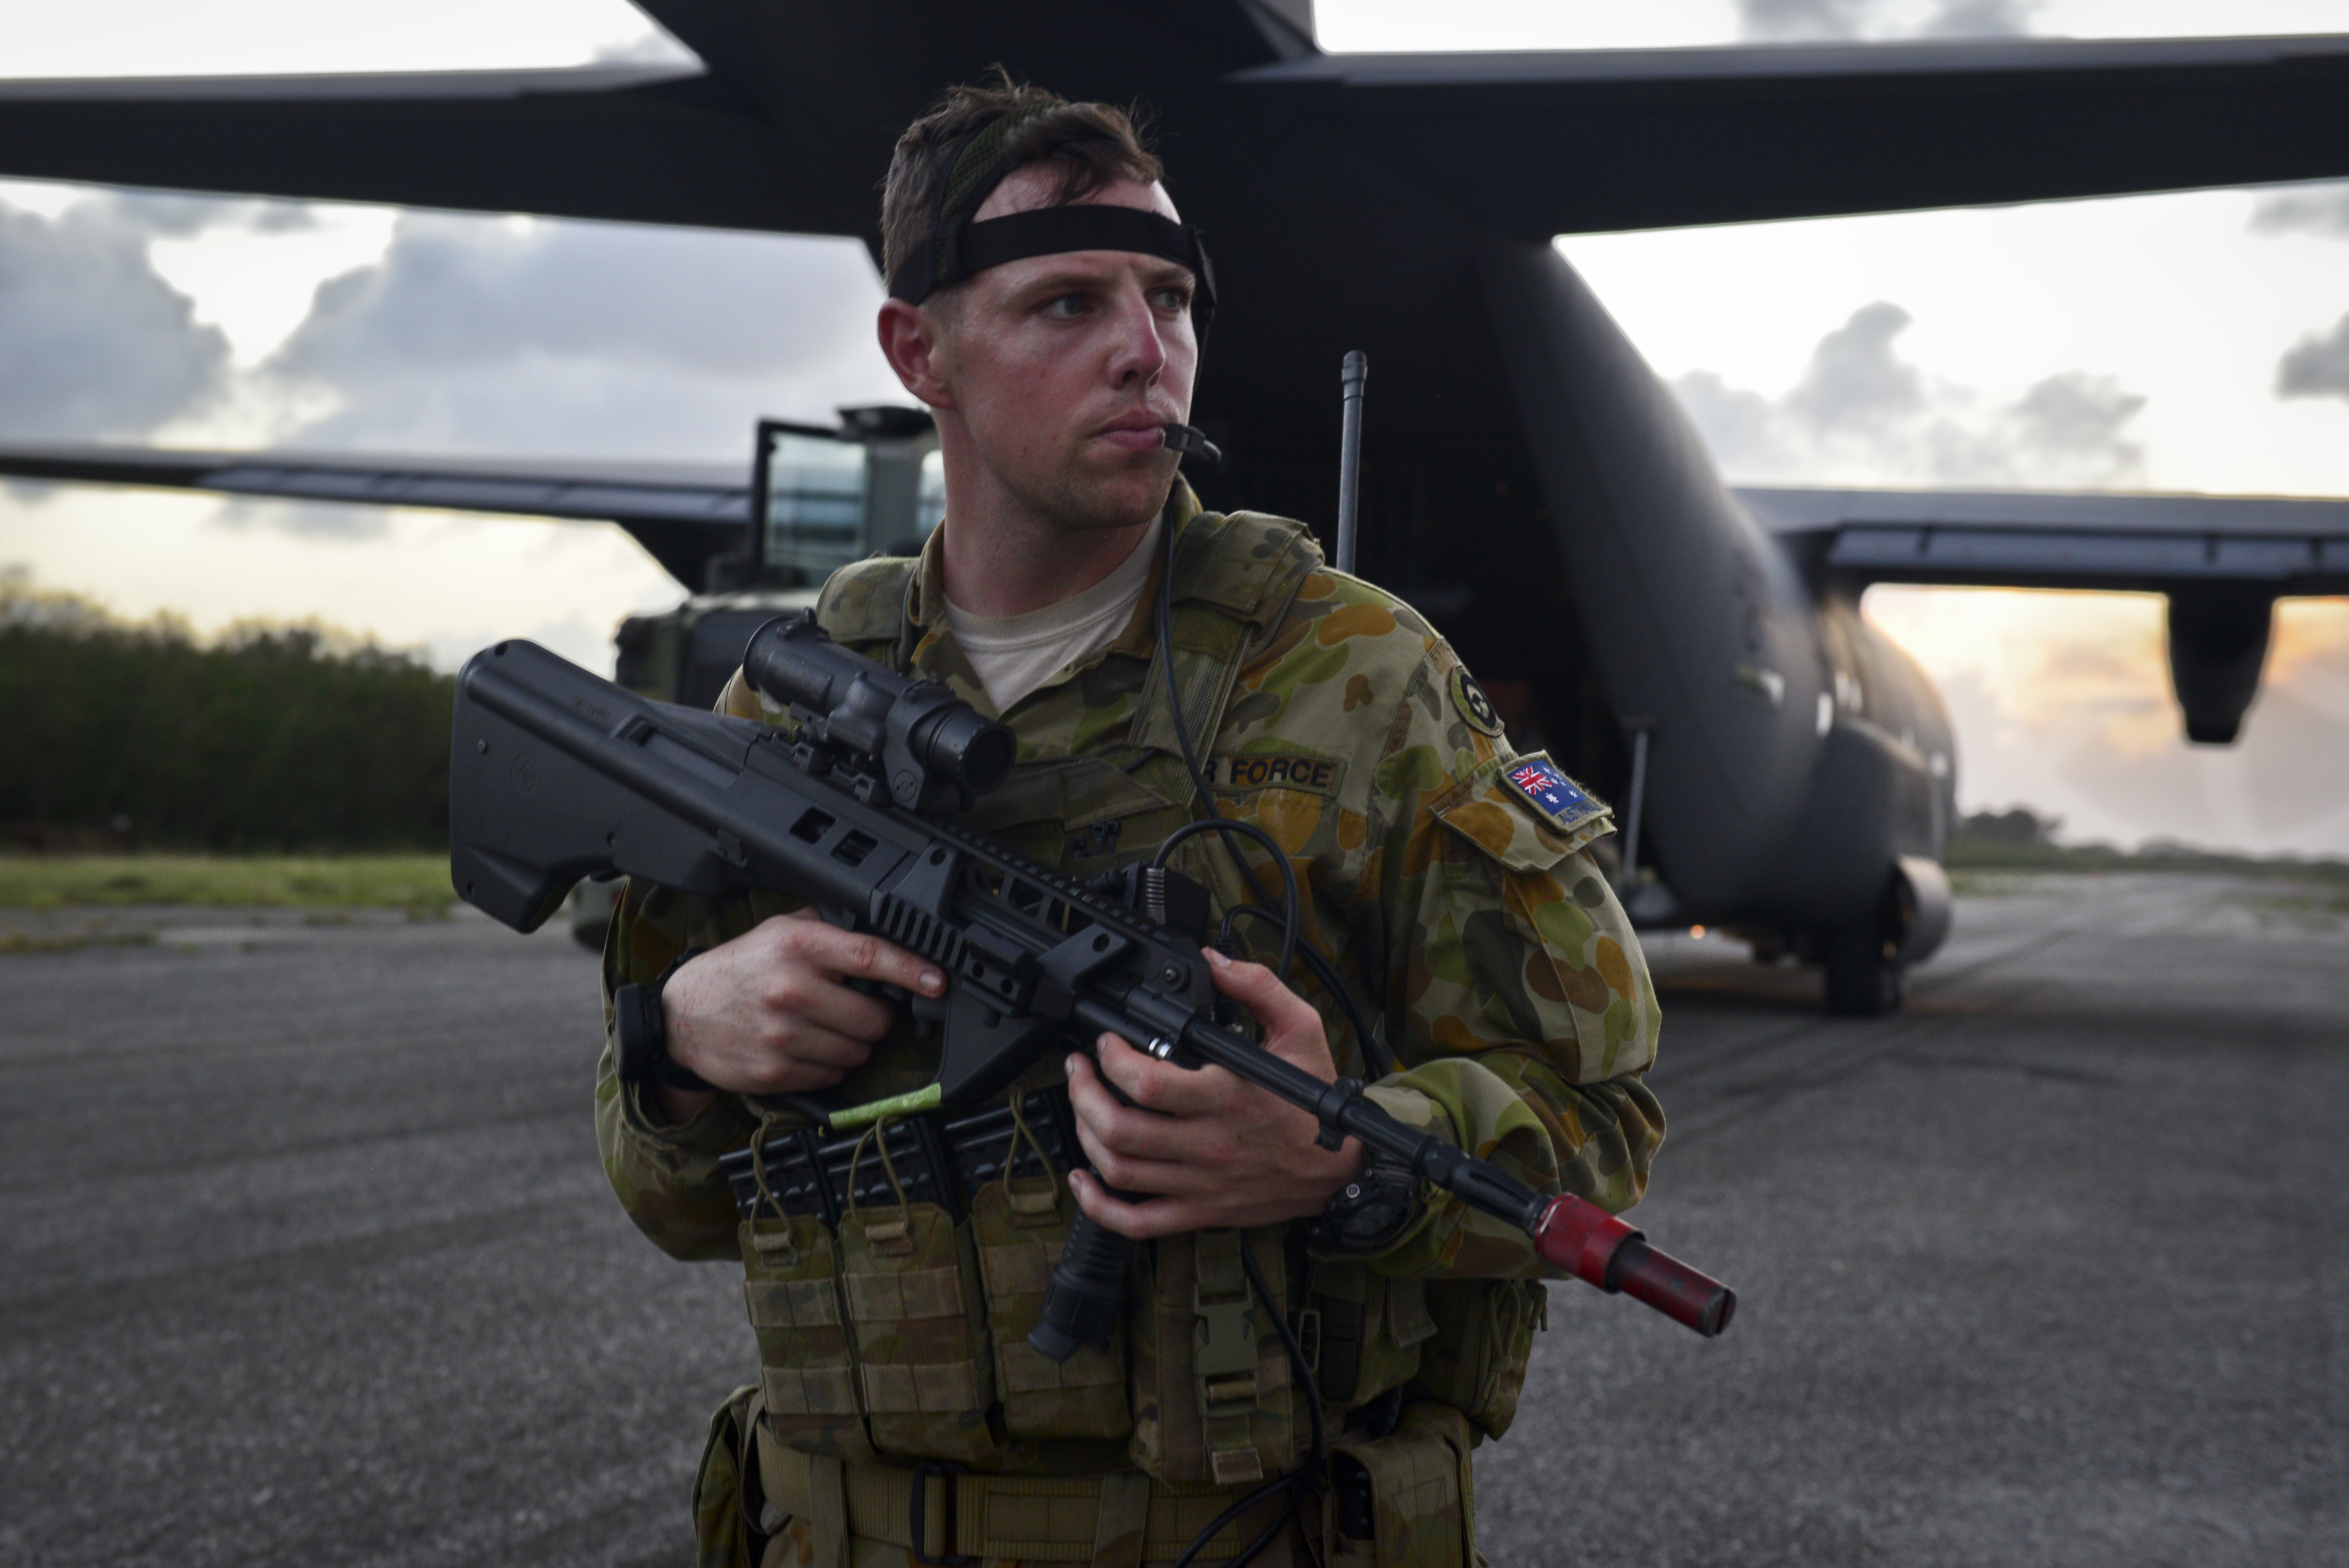 File:RAAF security forces member with a C-130J Hercules